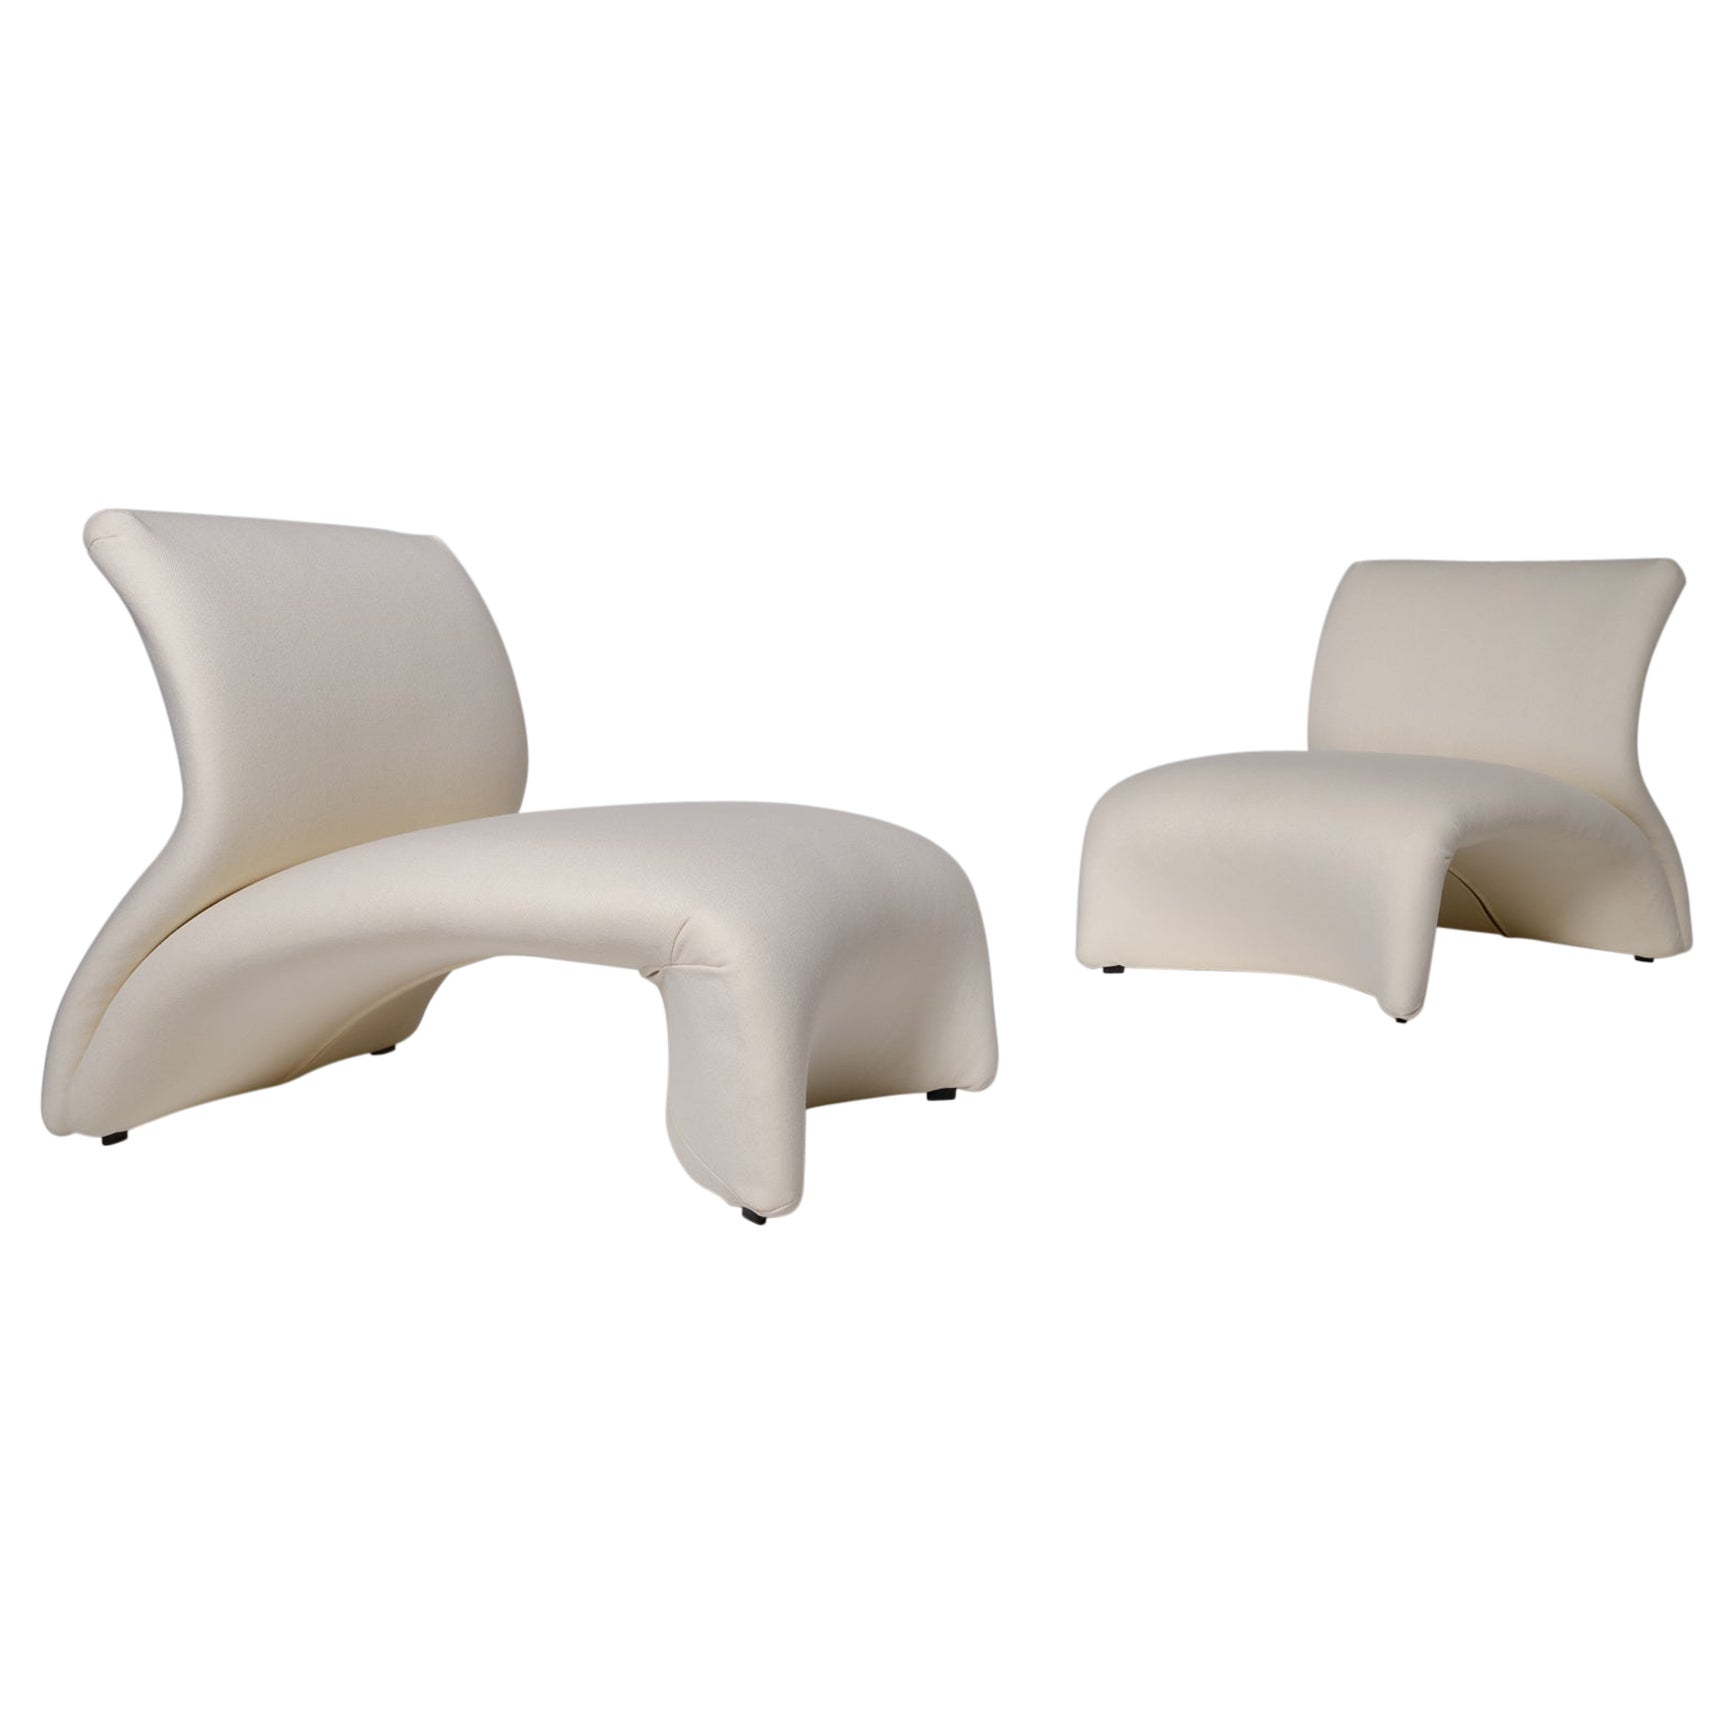 Pair of 'Kaïdo' Lounge Chairs by Kwok Hoï Chan for Steiner, 1968